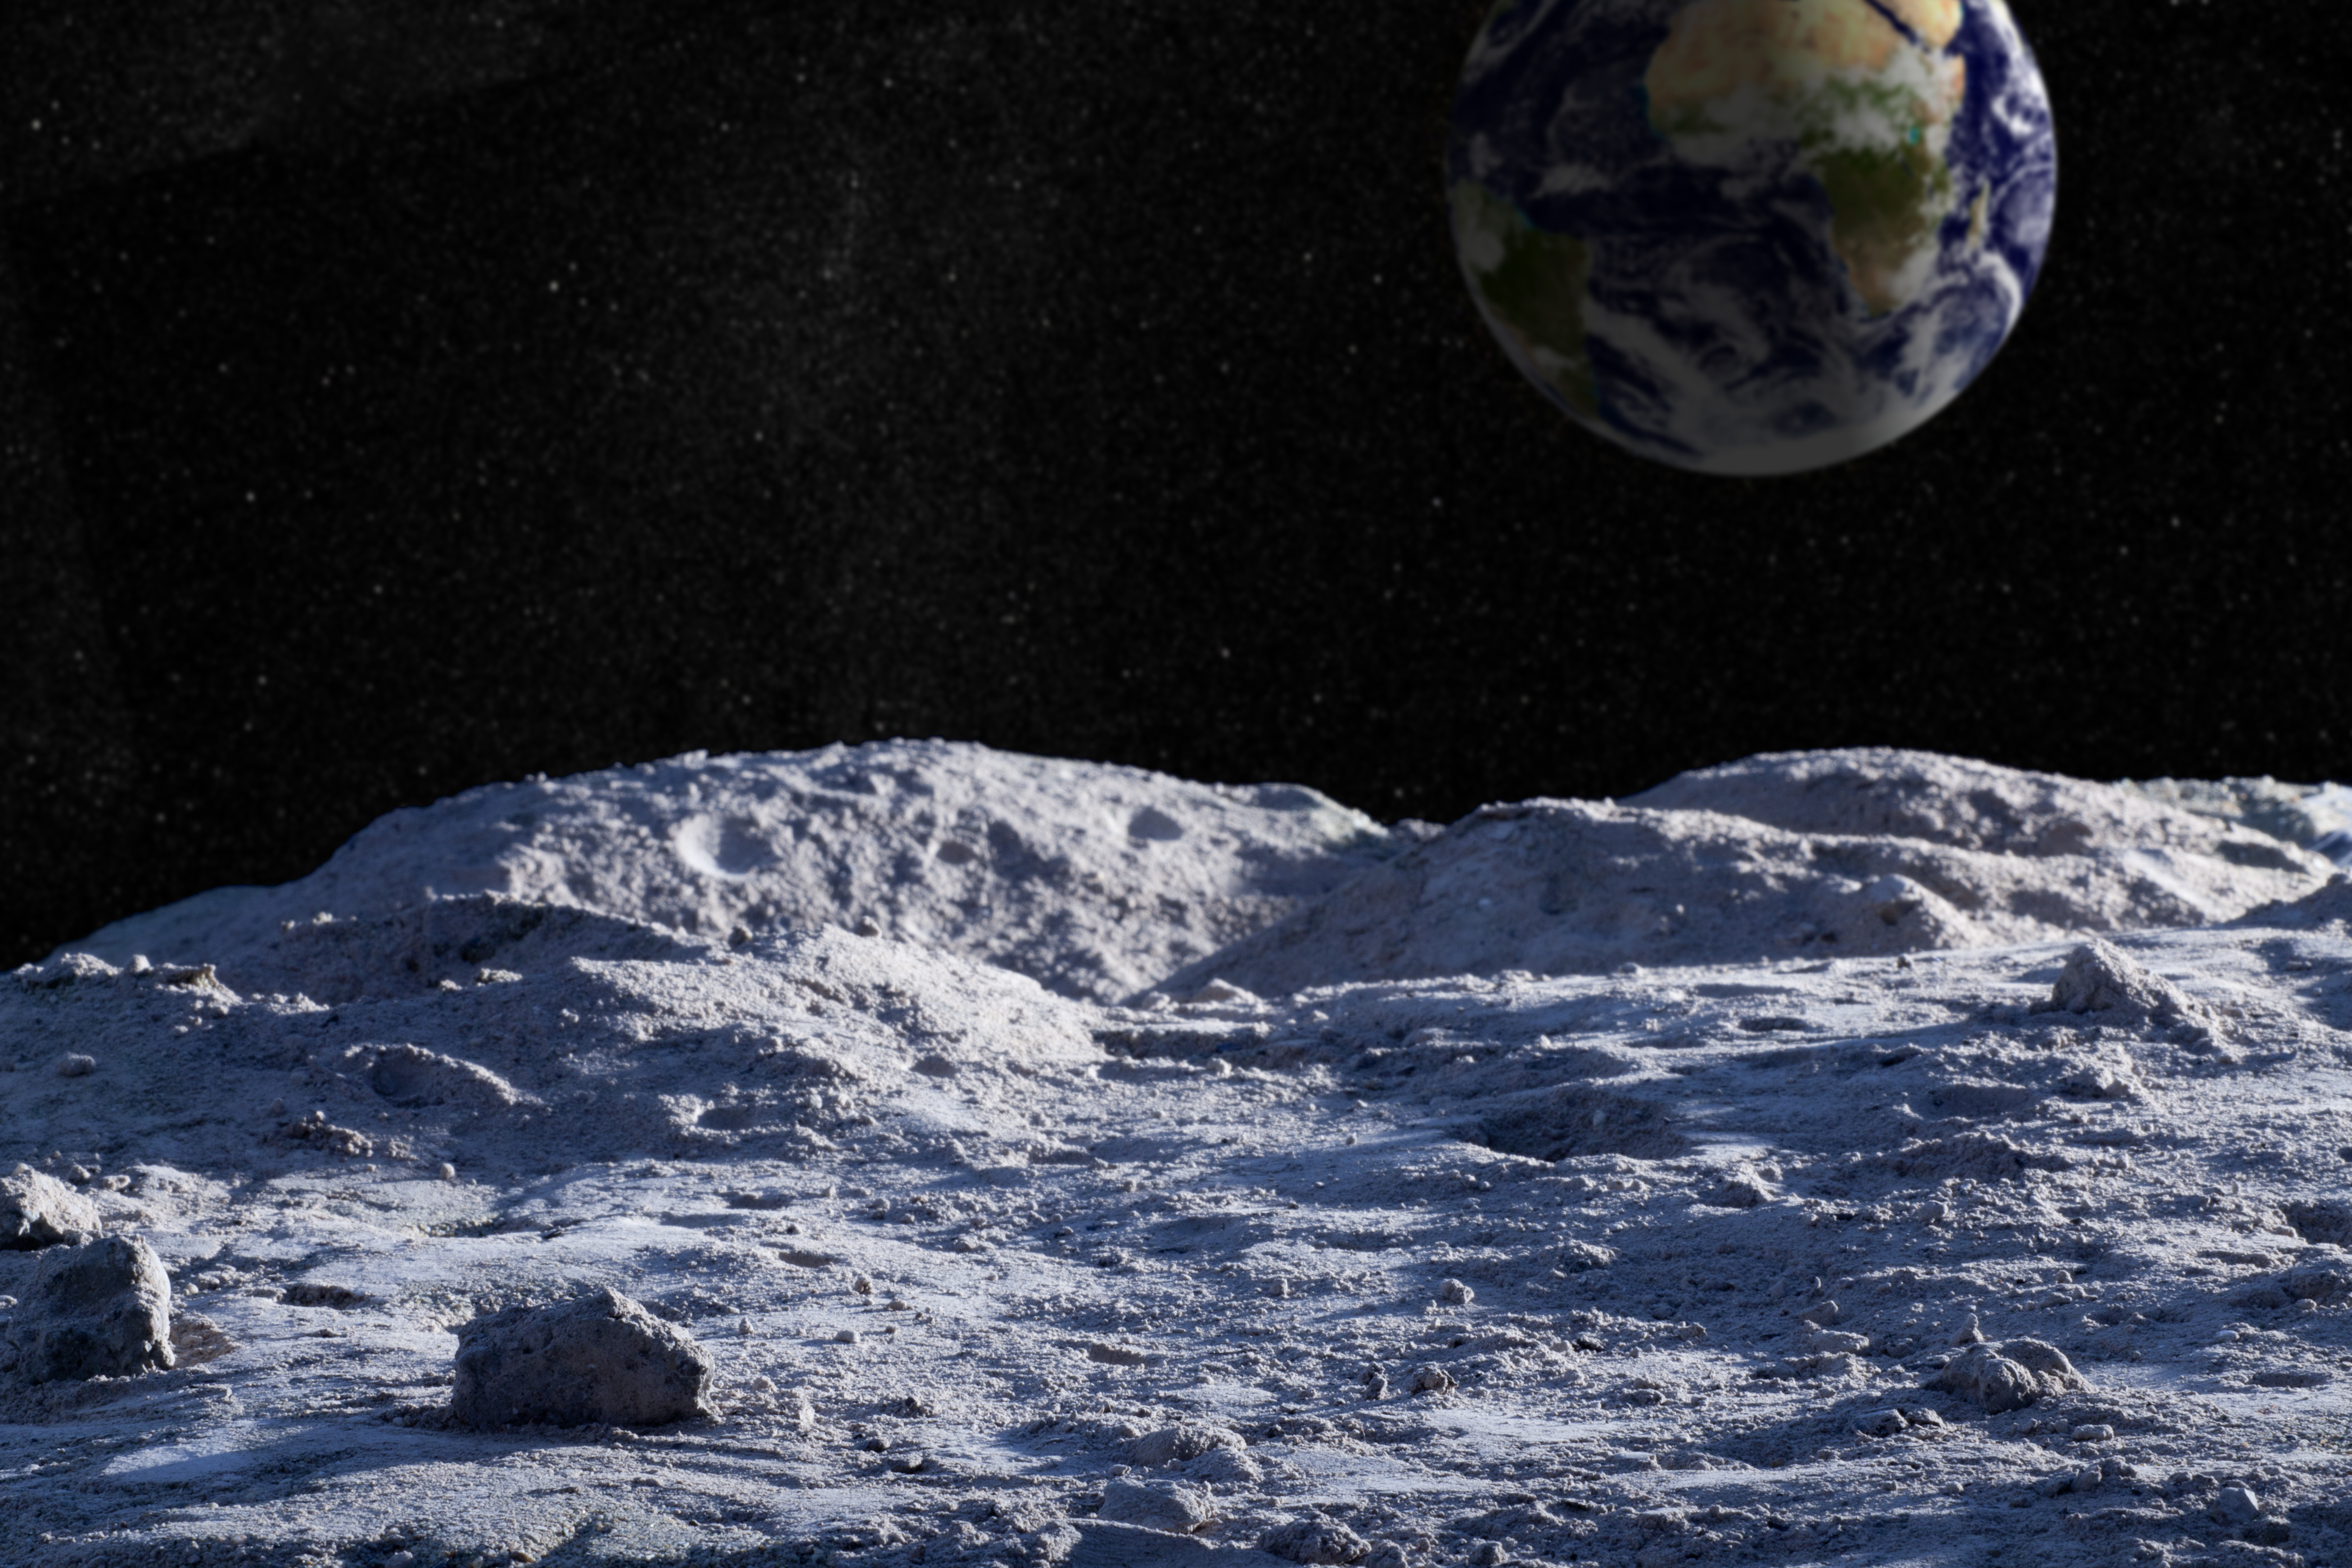 Moon surface with distant Earth and starfield. (Getty Images)